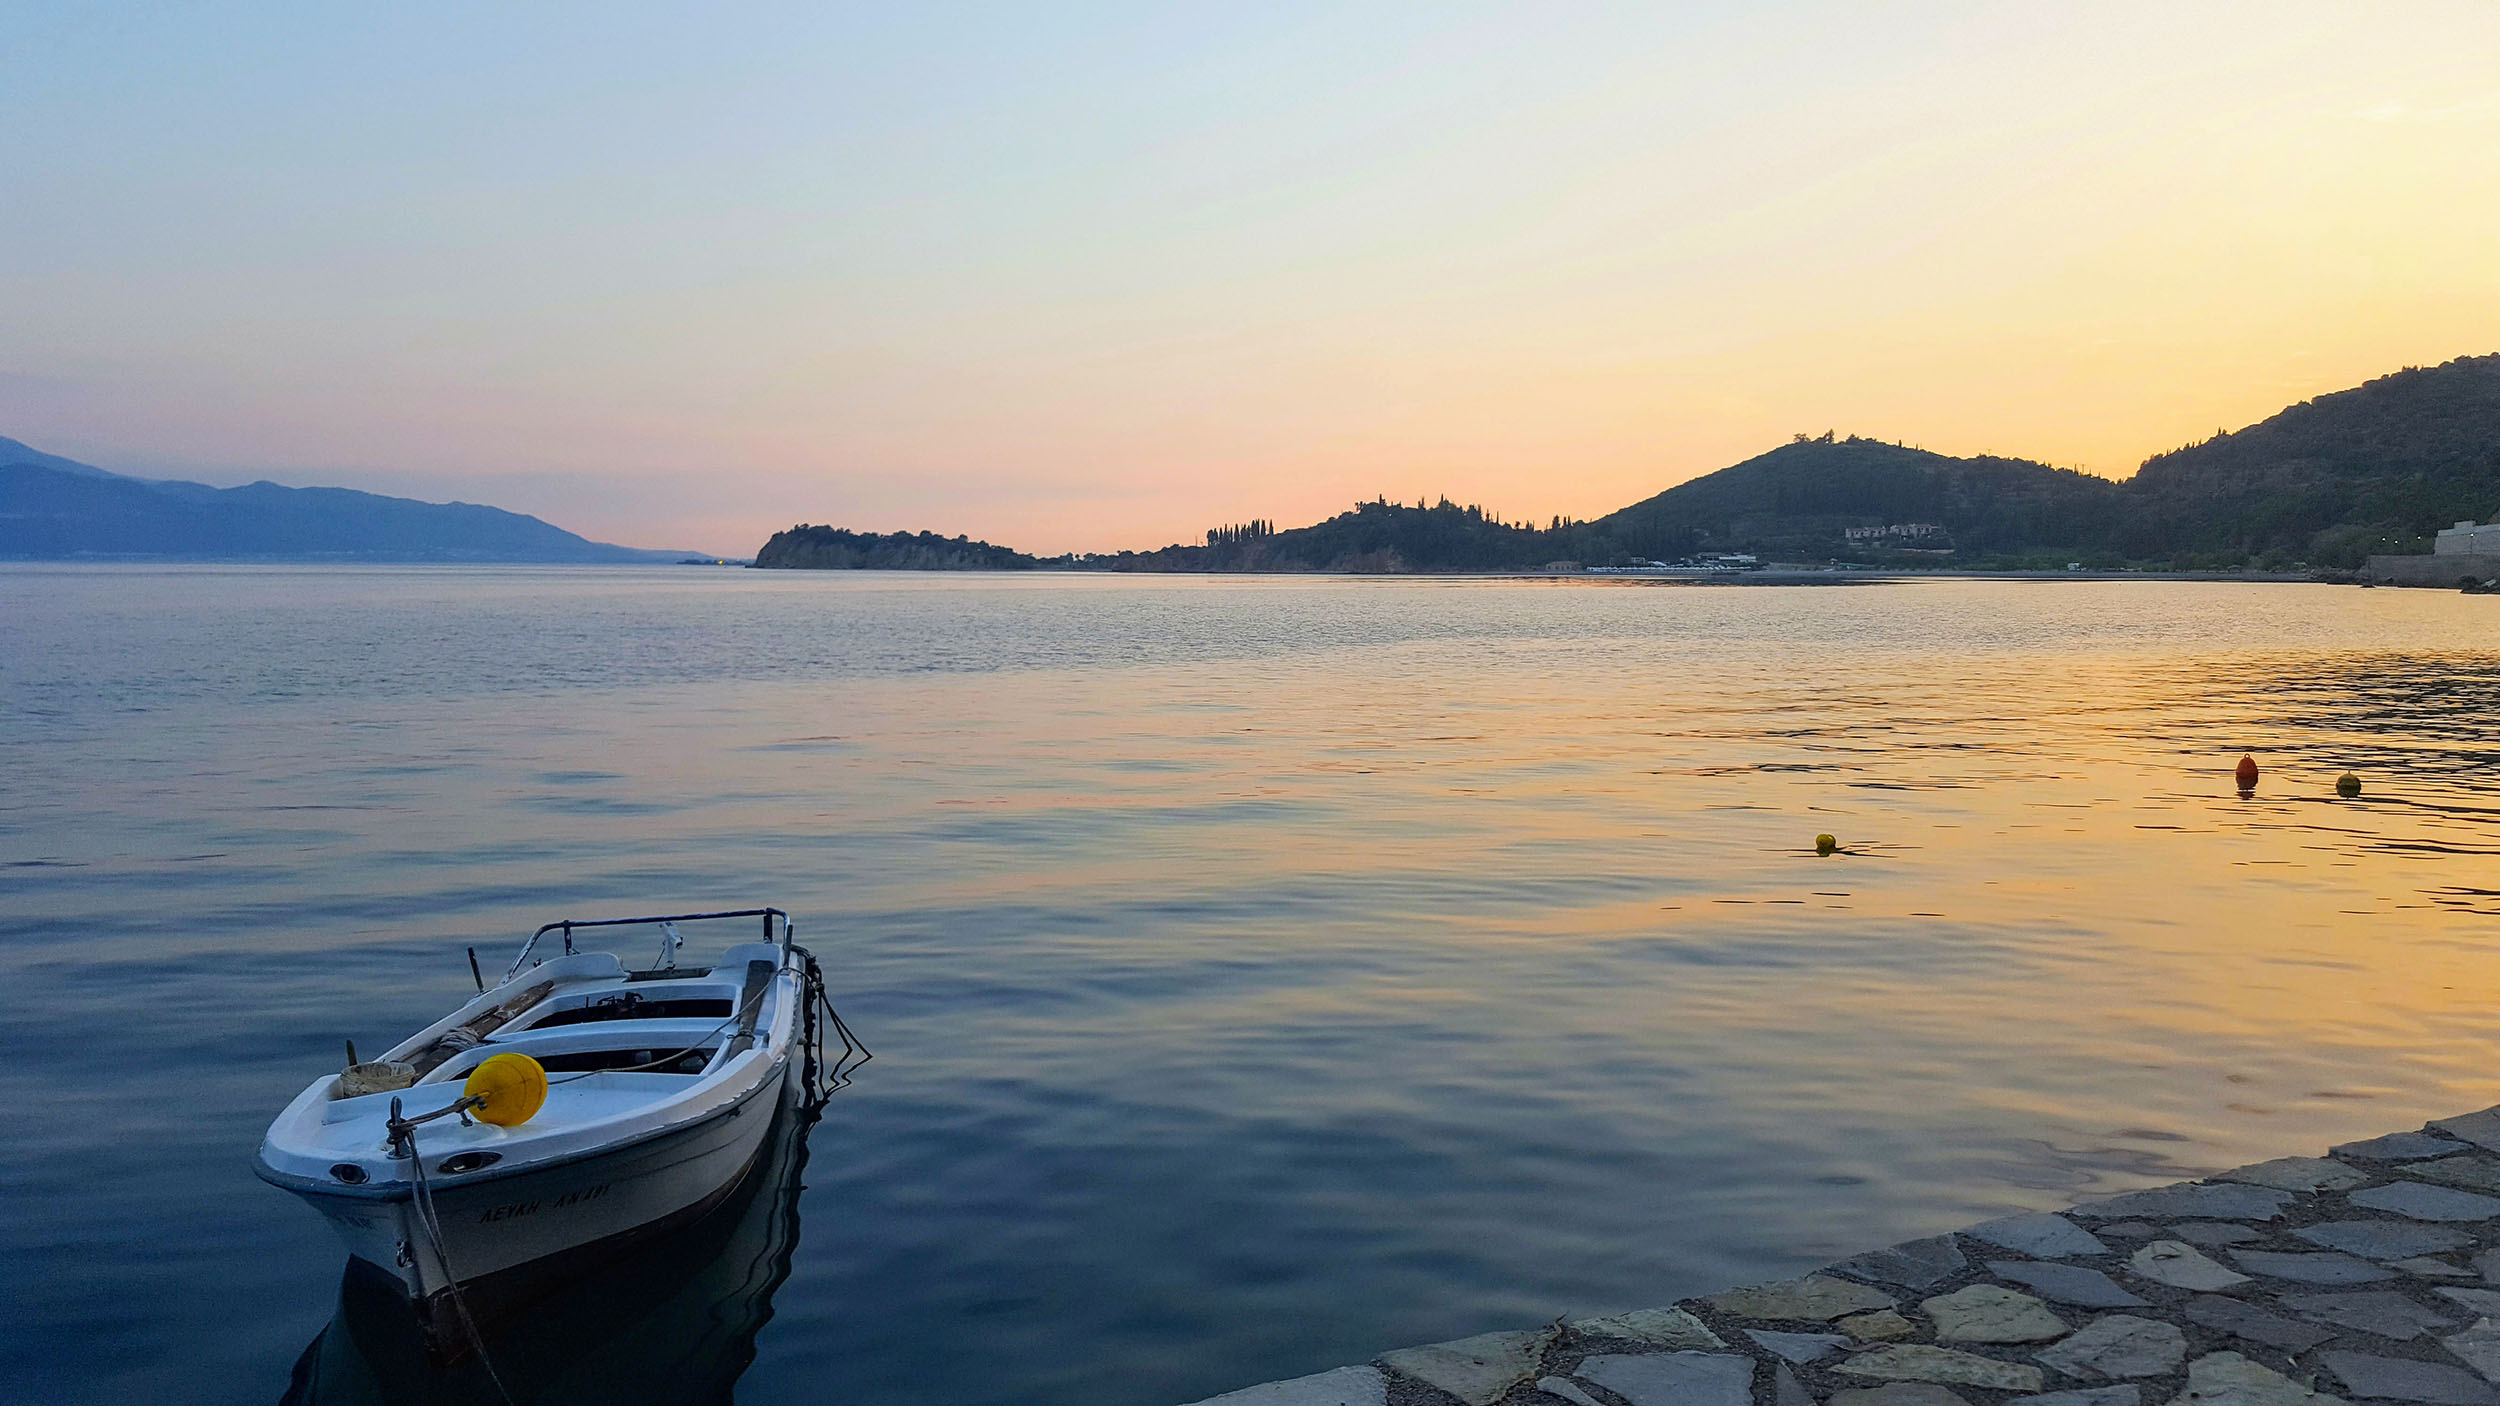 Monistiraki boat and sunset.jpg